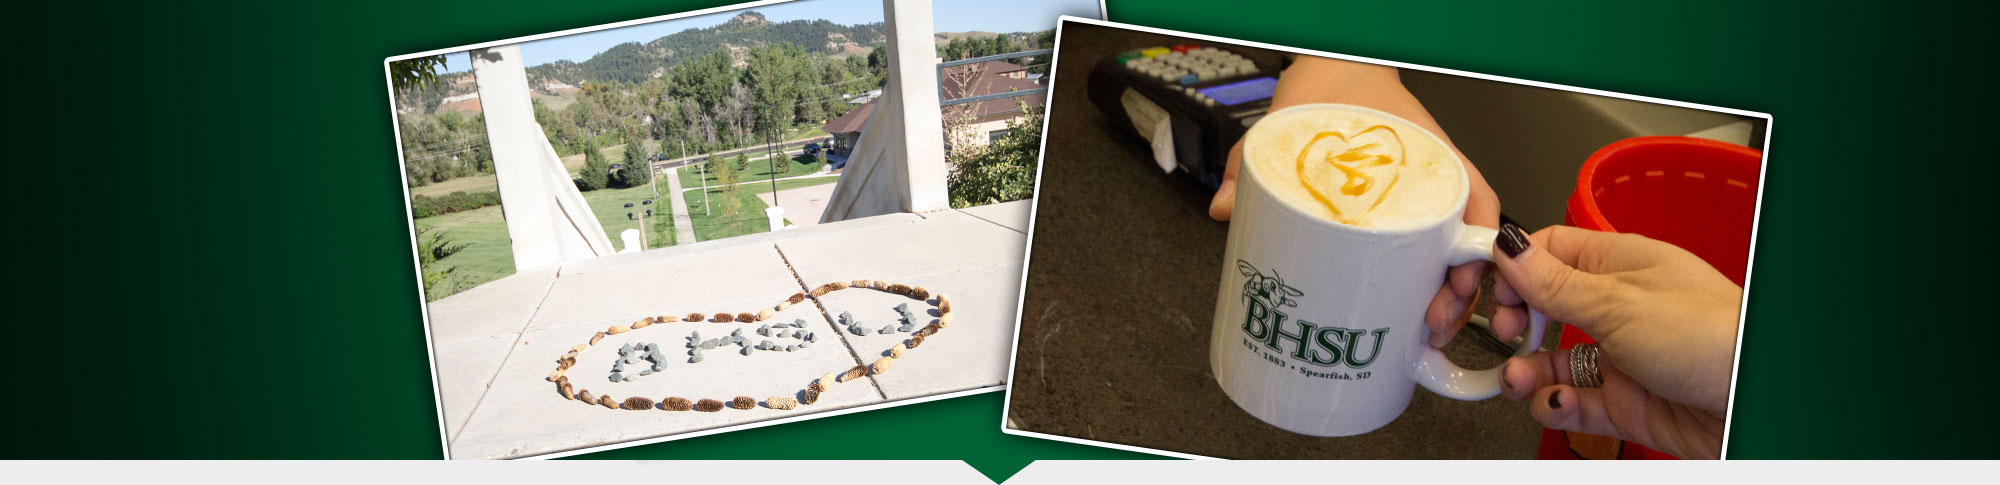 Tell your friends what you love about BHSU.